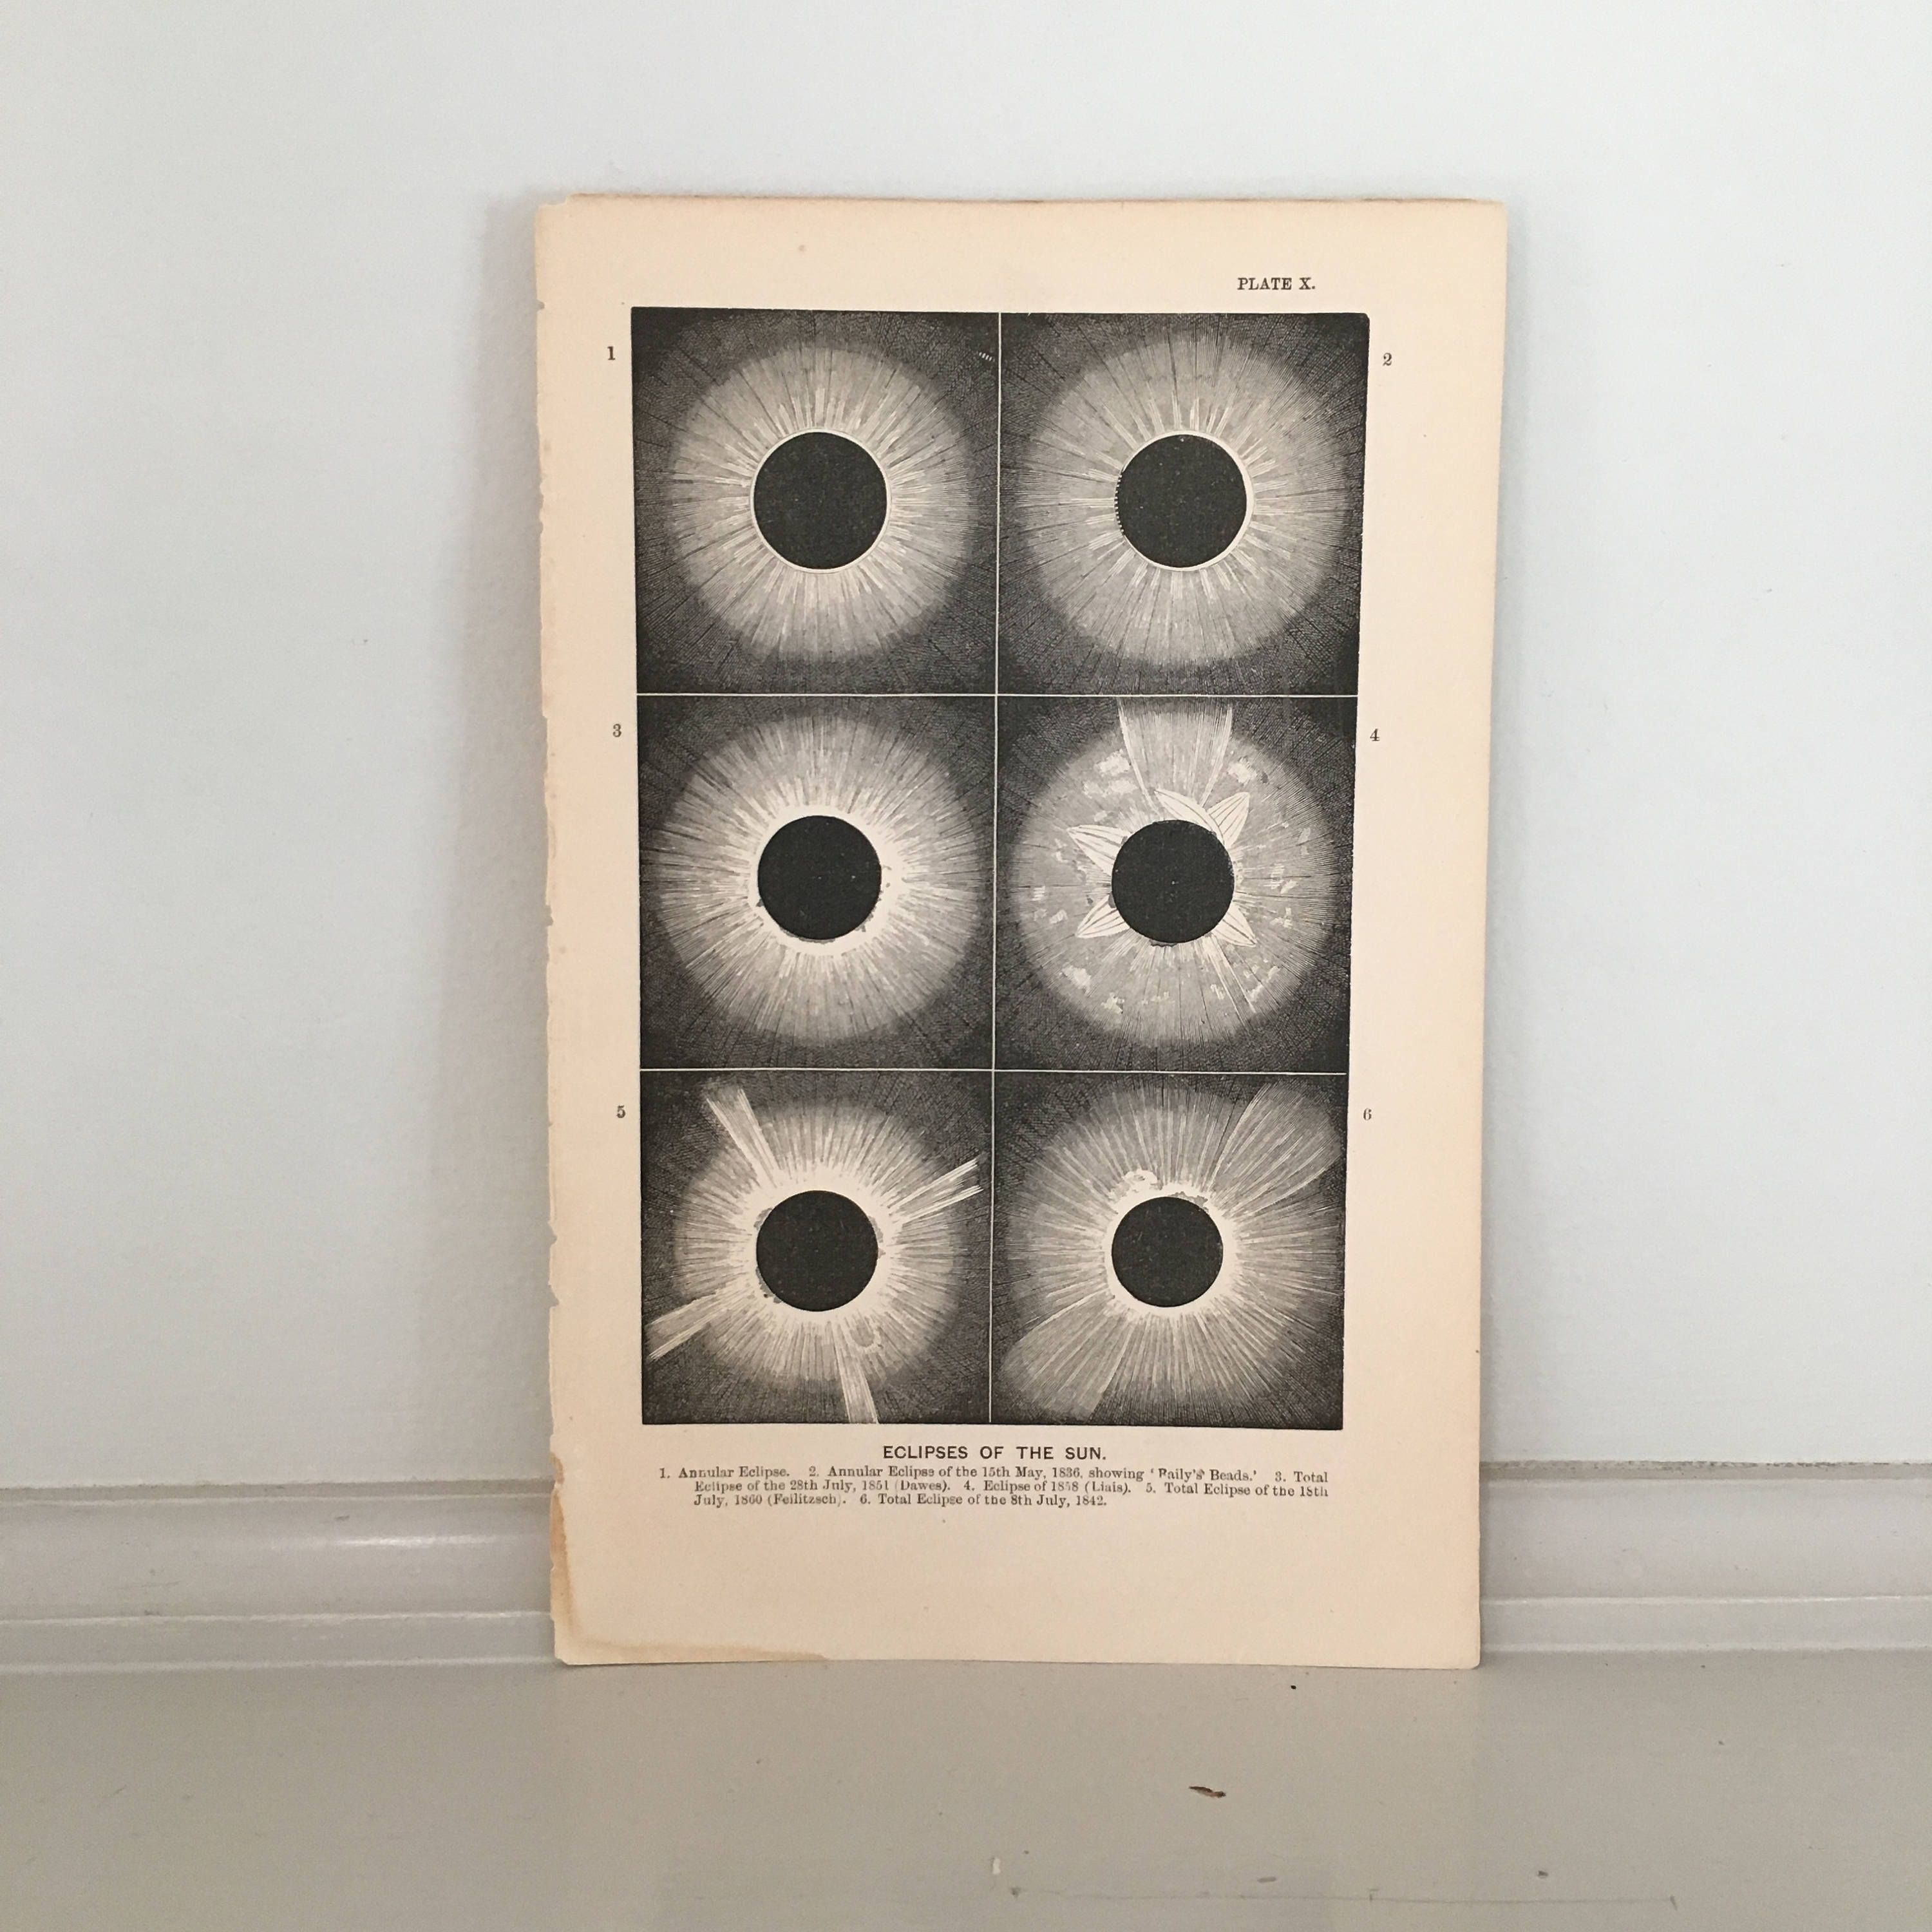 C Solar Eclipse Antique Lithograph Original Antique